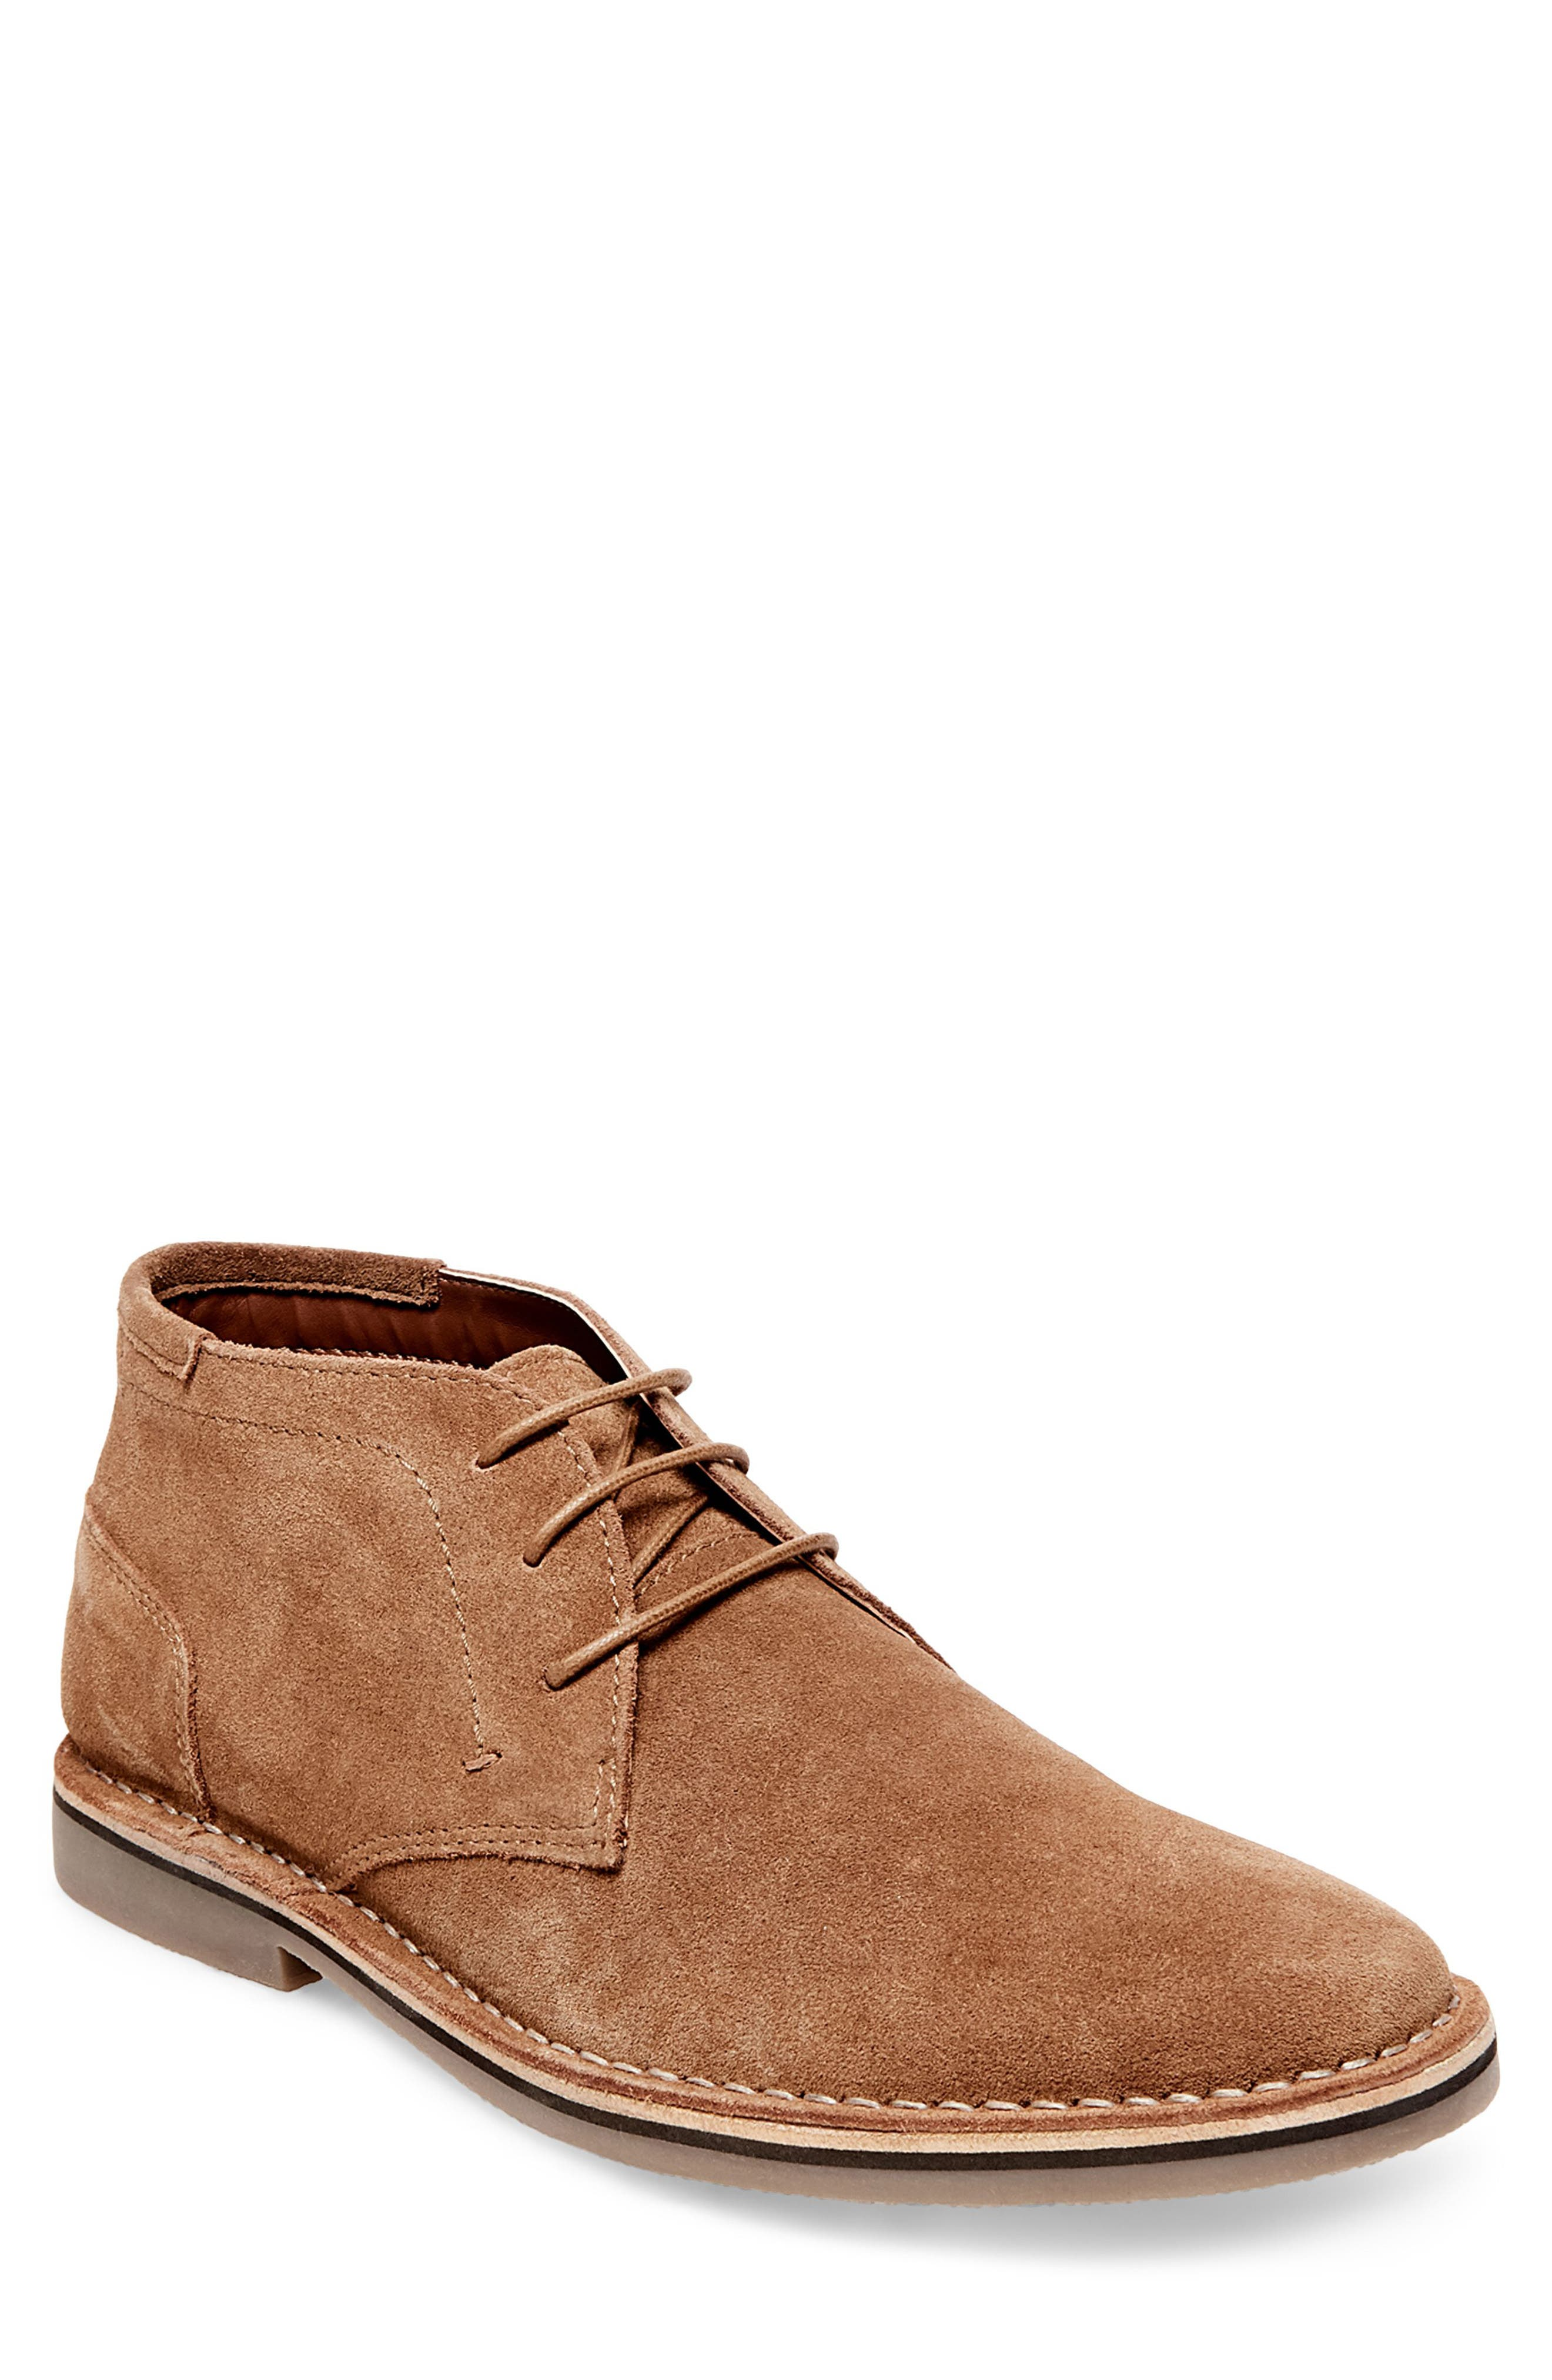 Steve Madden Hacksaw Chukka Boot, Brown